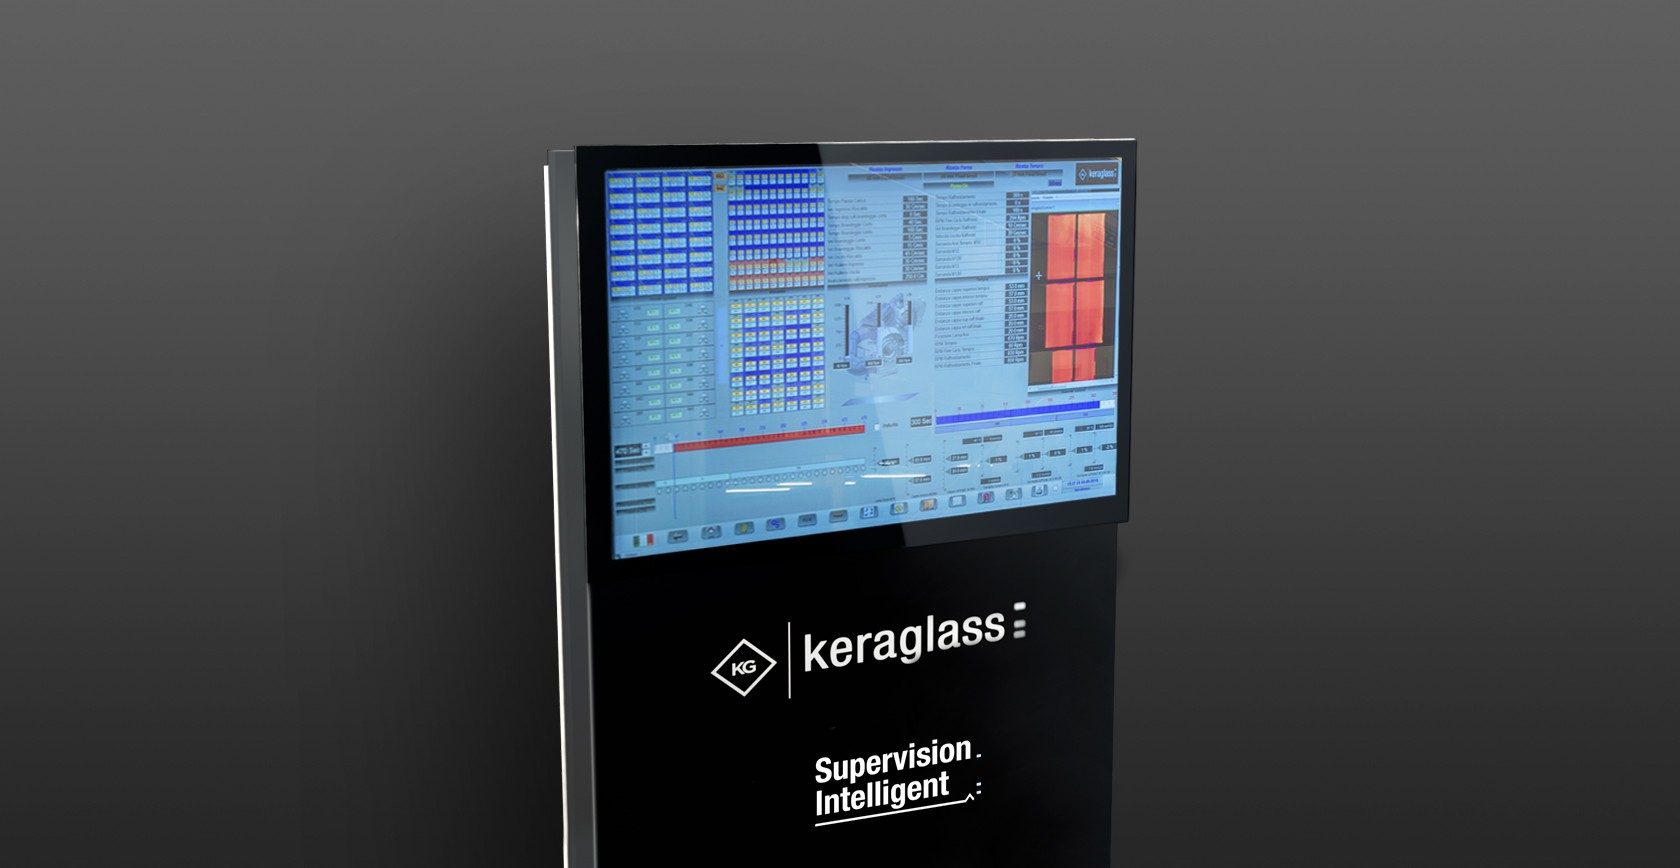 Keraglass Up Supervision